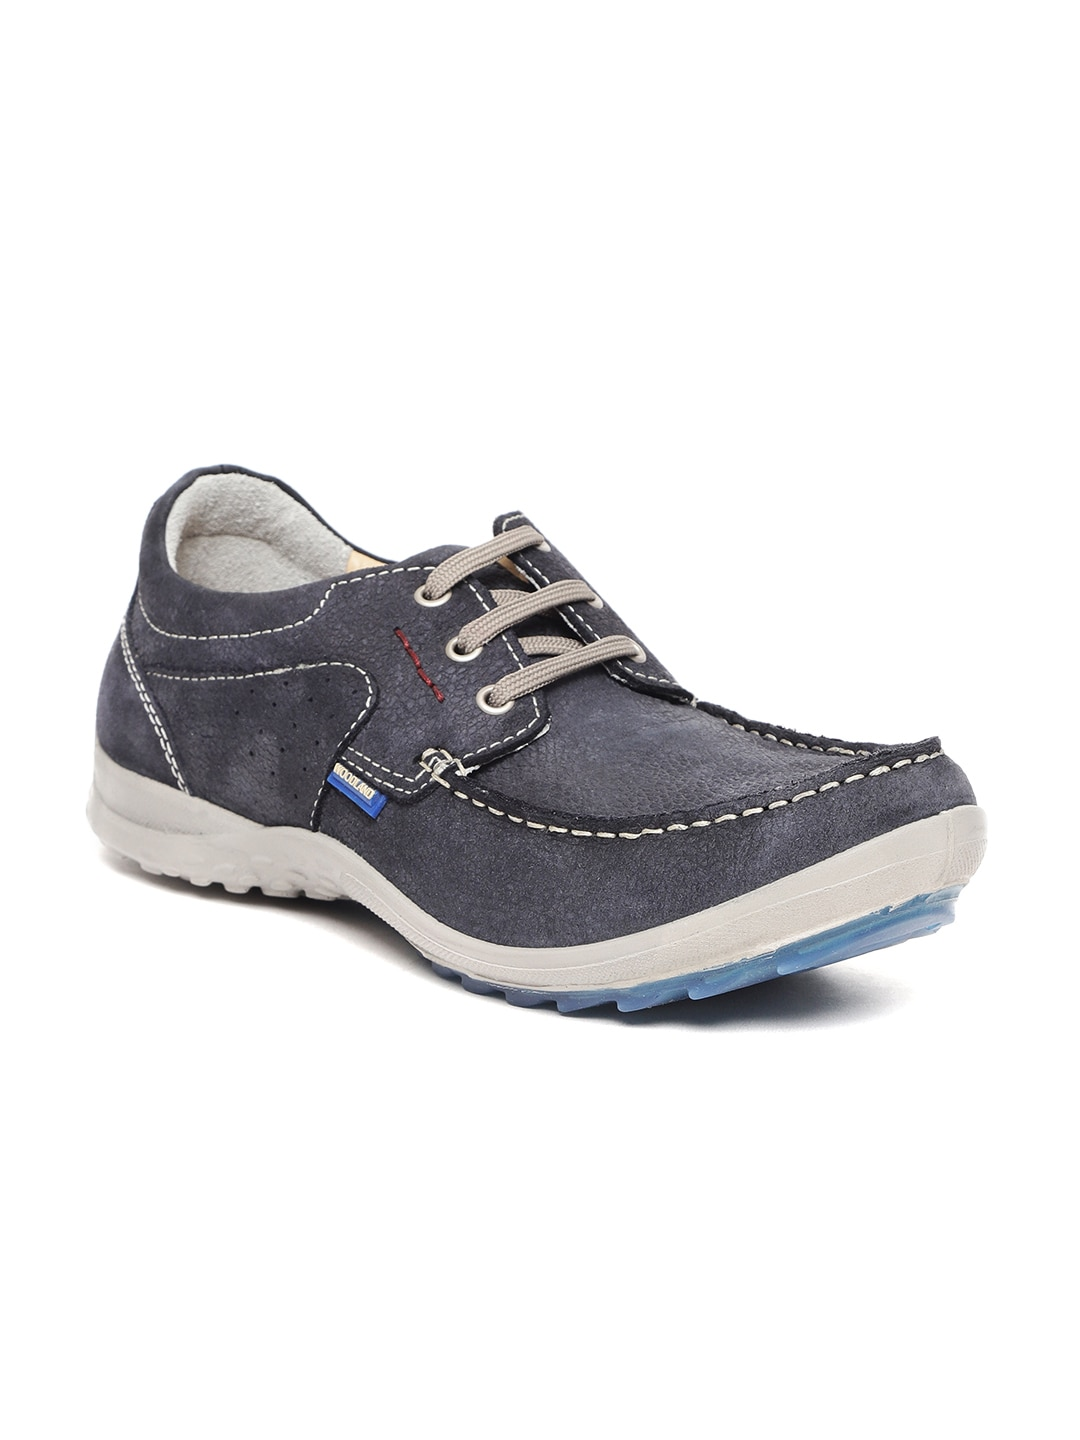 d2212ca0461 Woodland Shoes - Buy Genuine Woodland Shoes Online At Best Price - Myntra